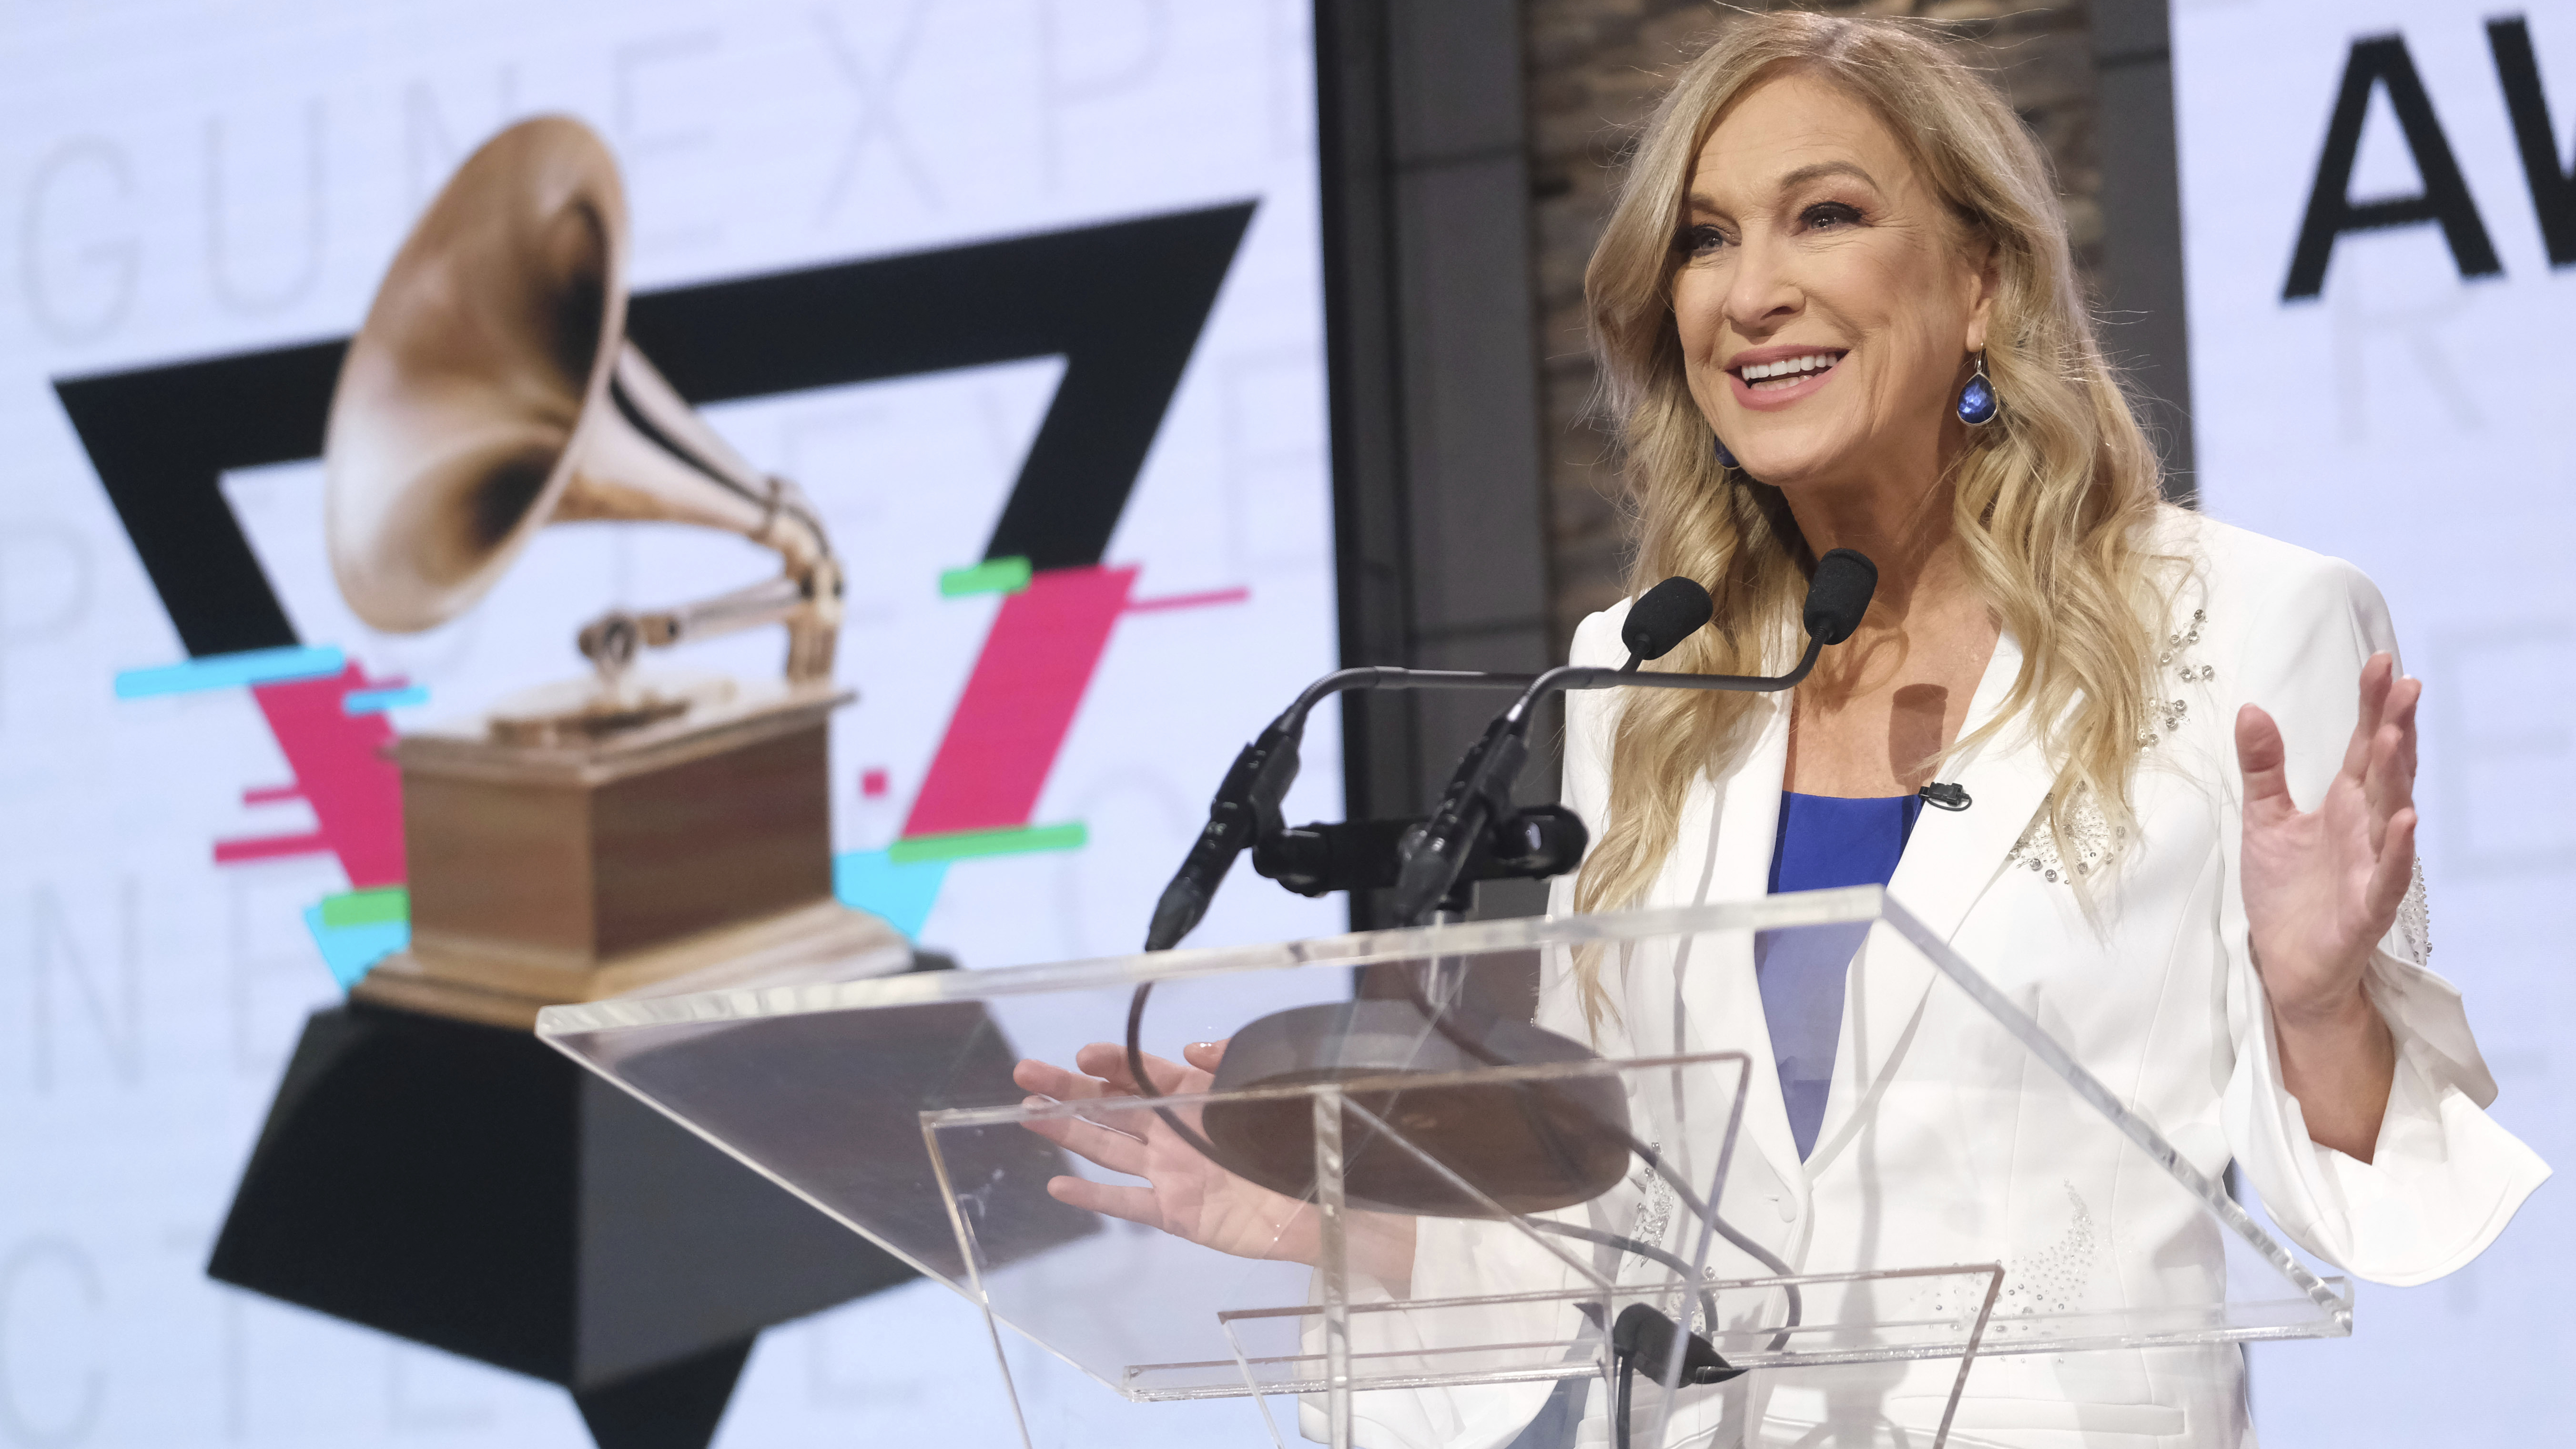 Grammys employee slams ousted CEO's